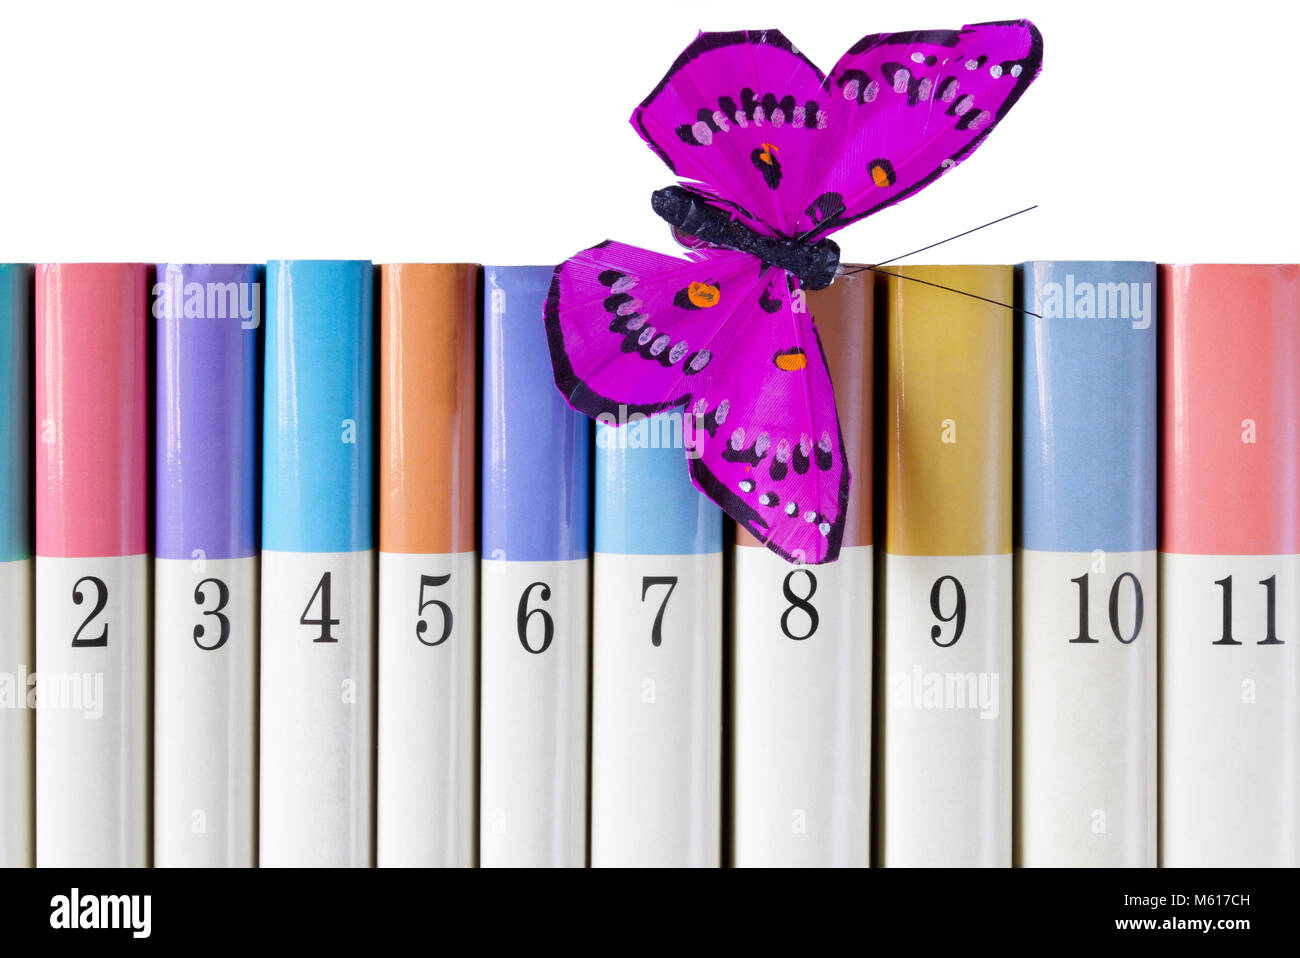 A series of books in different colours and ordered by number, with a silk butterfly alighted on the cover of one - Stock Image